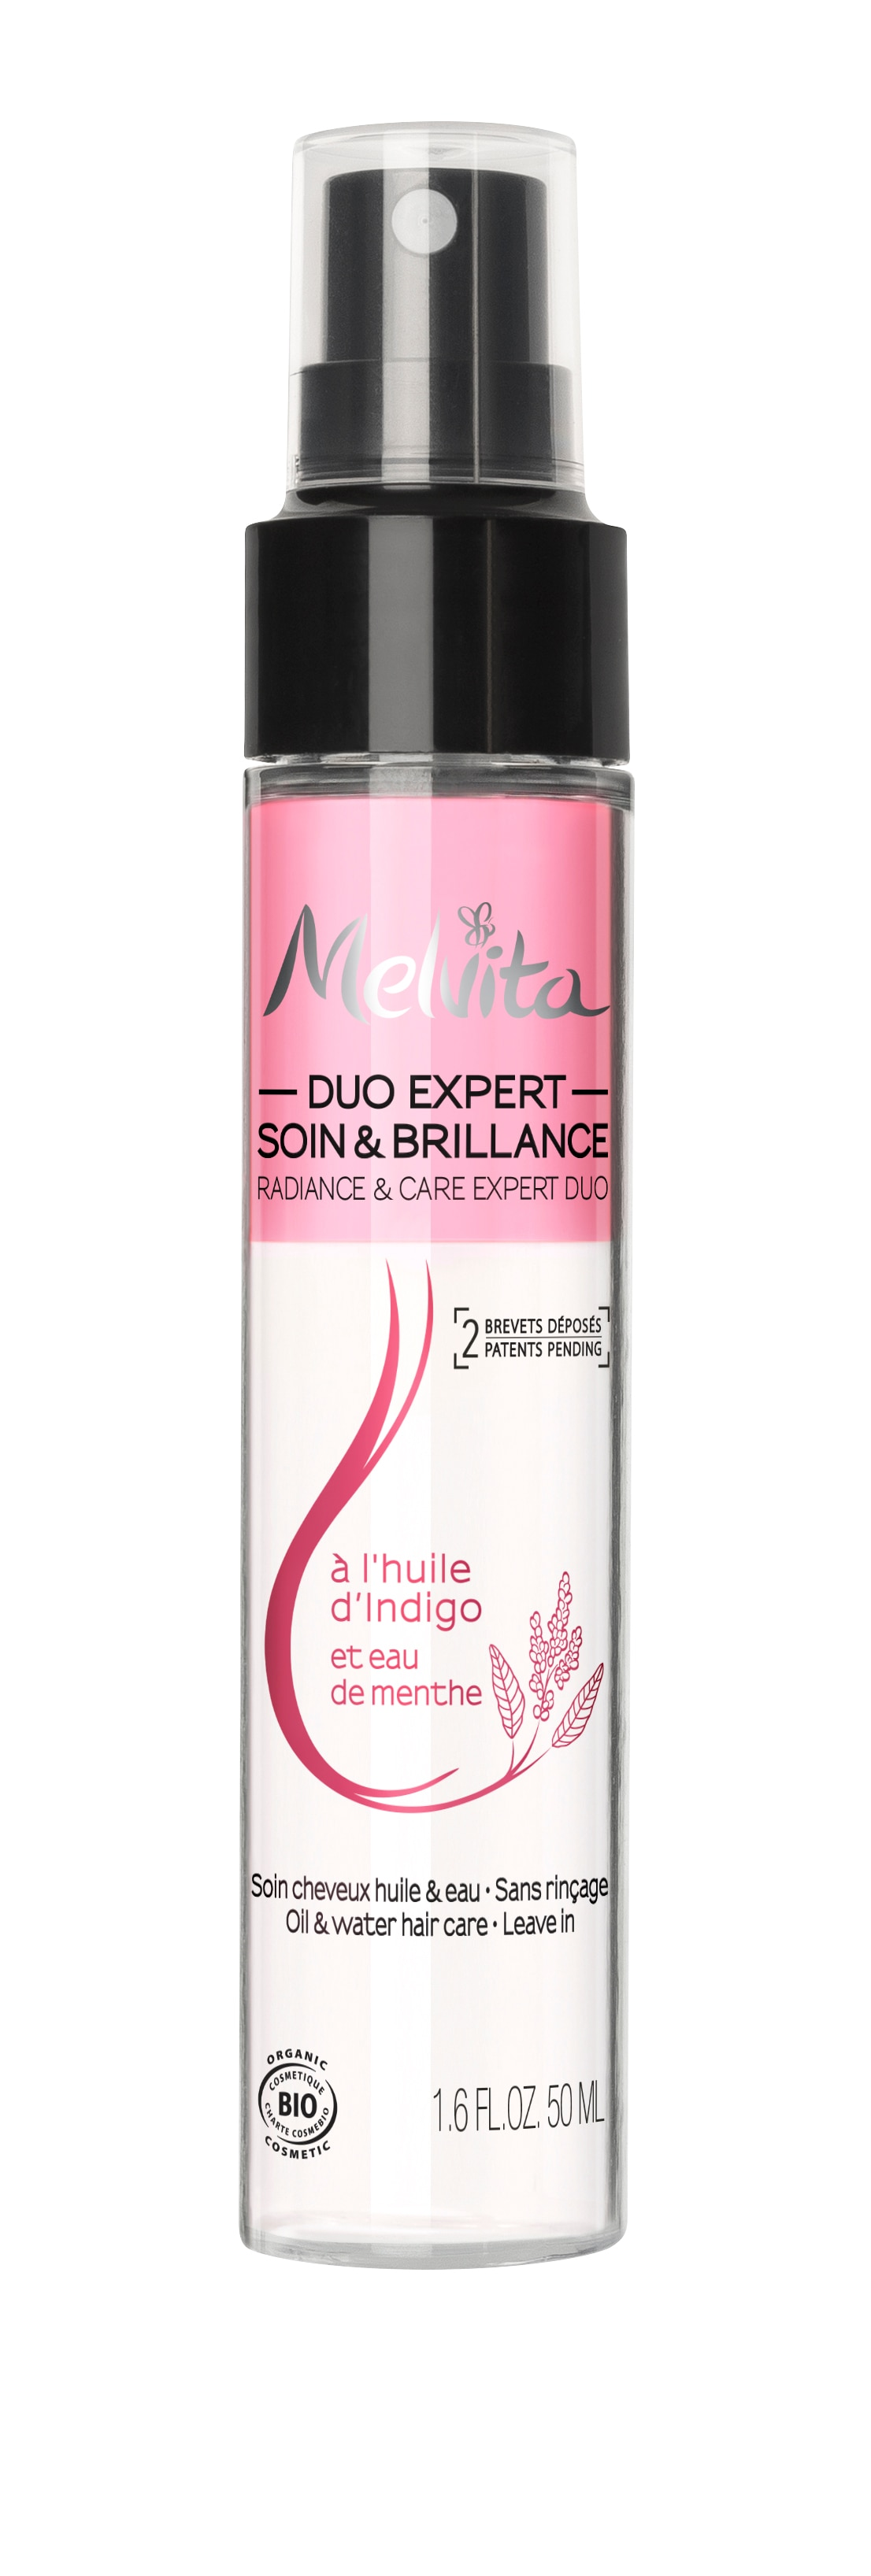 Duo expert - Soin & brillance